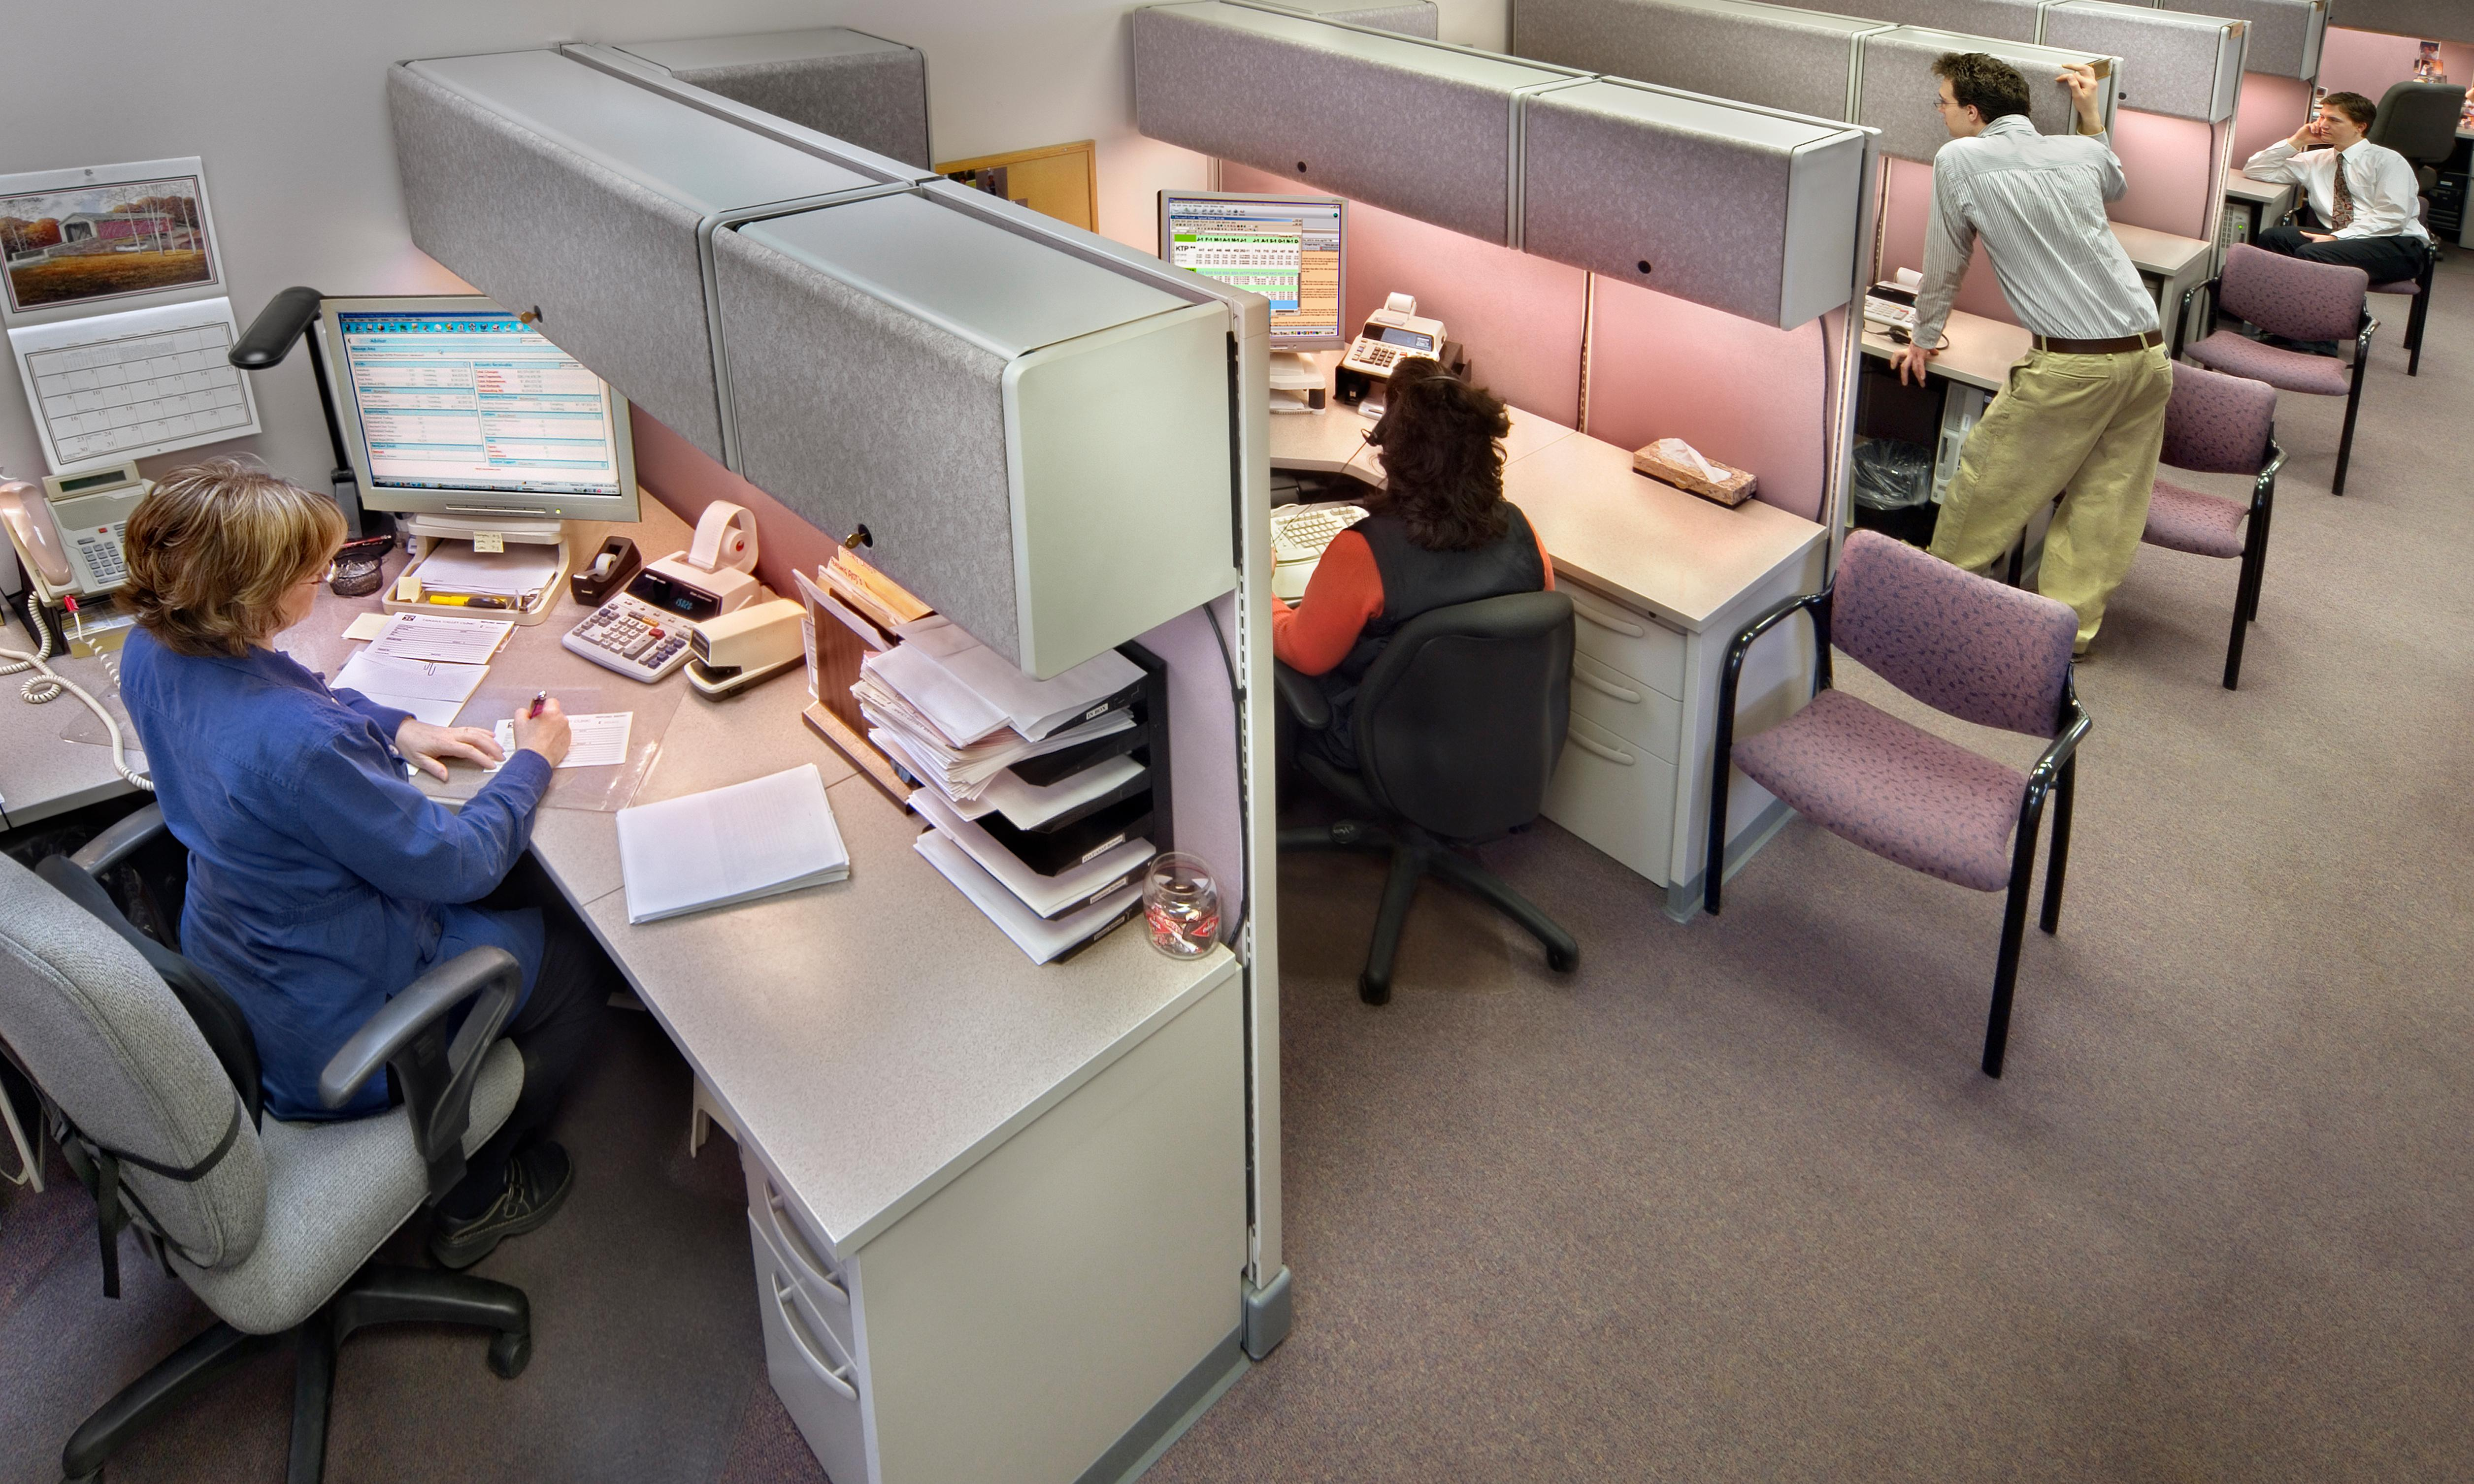 We might soon be forbidden from falling in love at work. Do we want that?